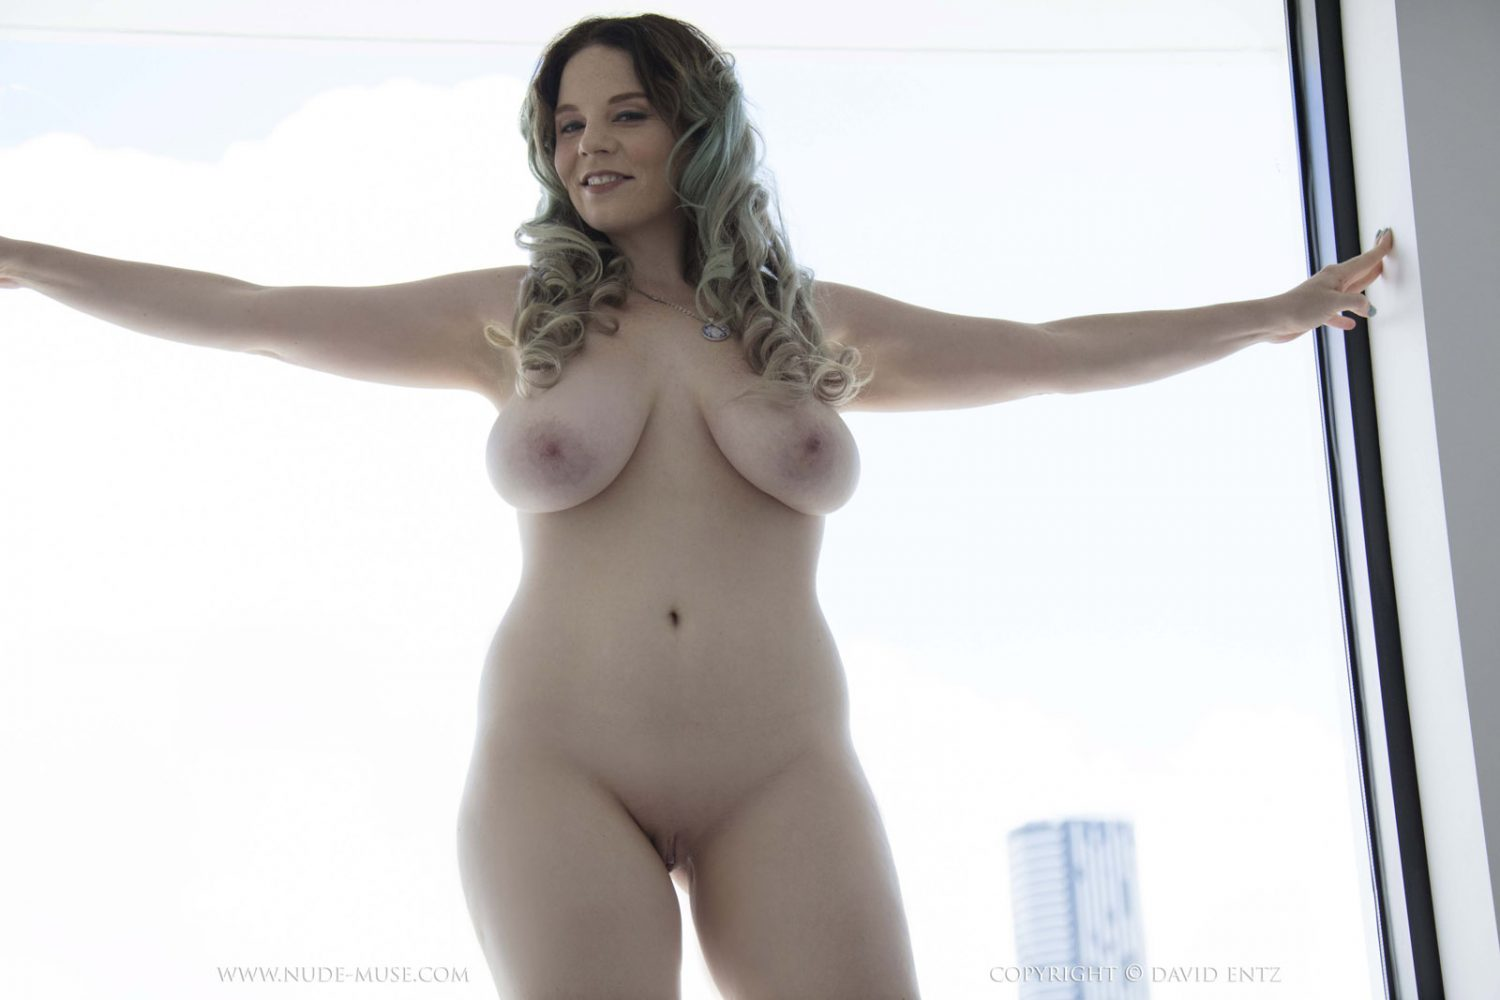 Opinion Nude girls doing exercise think